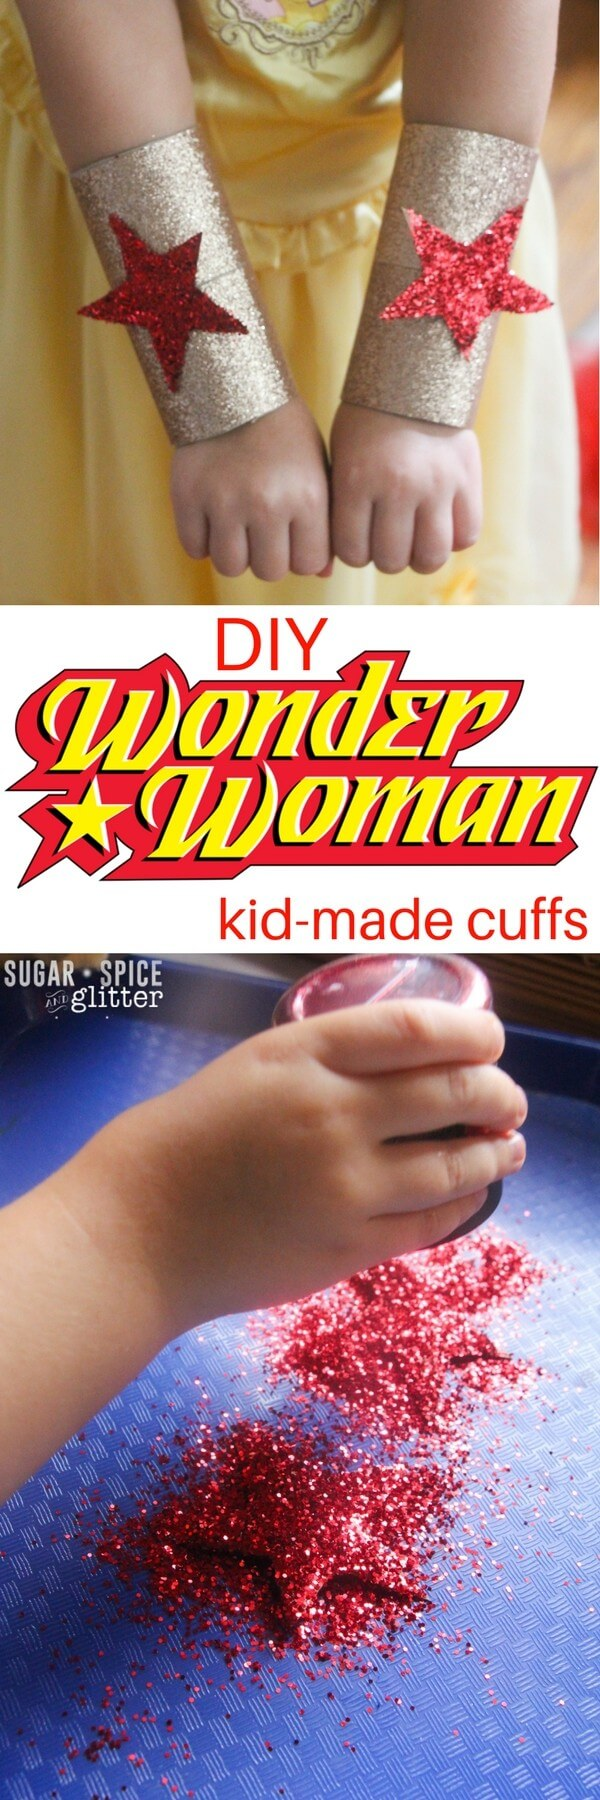 DIY Wonder Woman Cuffs for an easy homemade costume kids can make themselves! This quick and easy craft transforms it's maker into an indestructible superhero with just 10 minutes of crafting time and some glitter